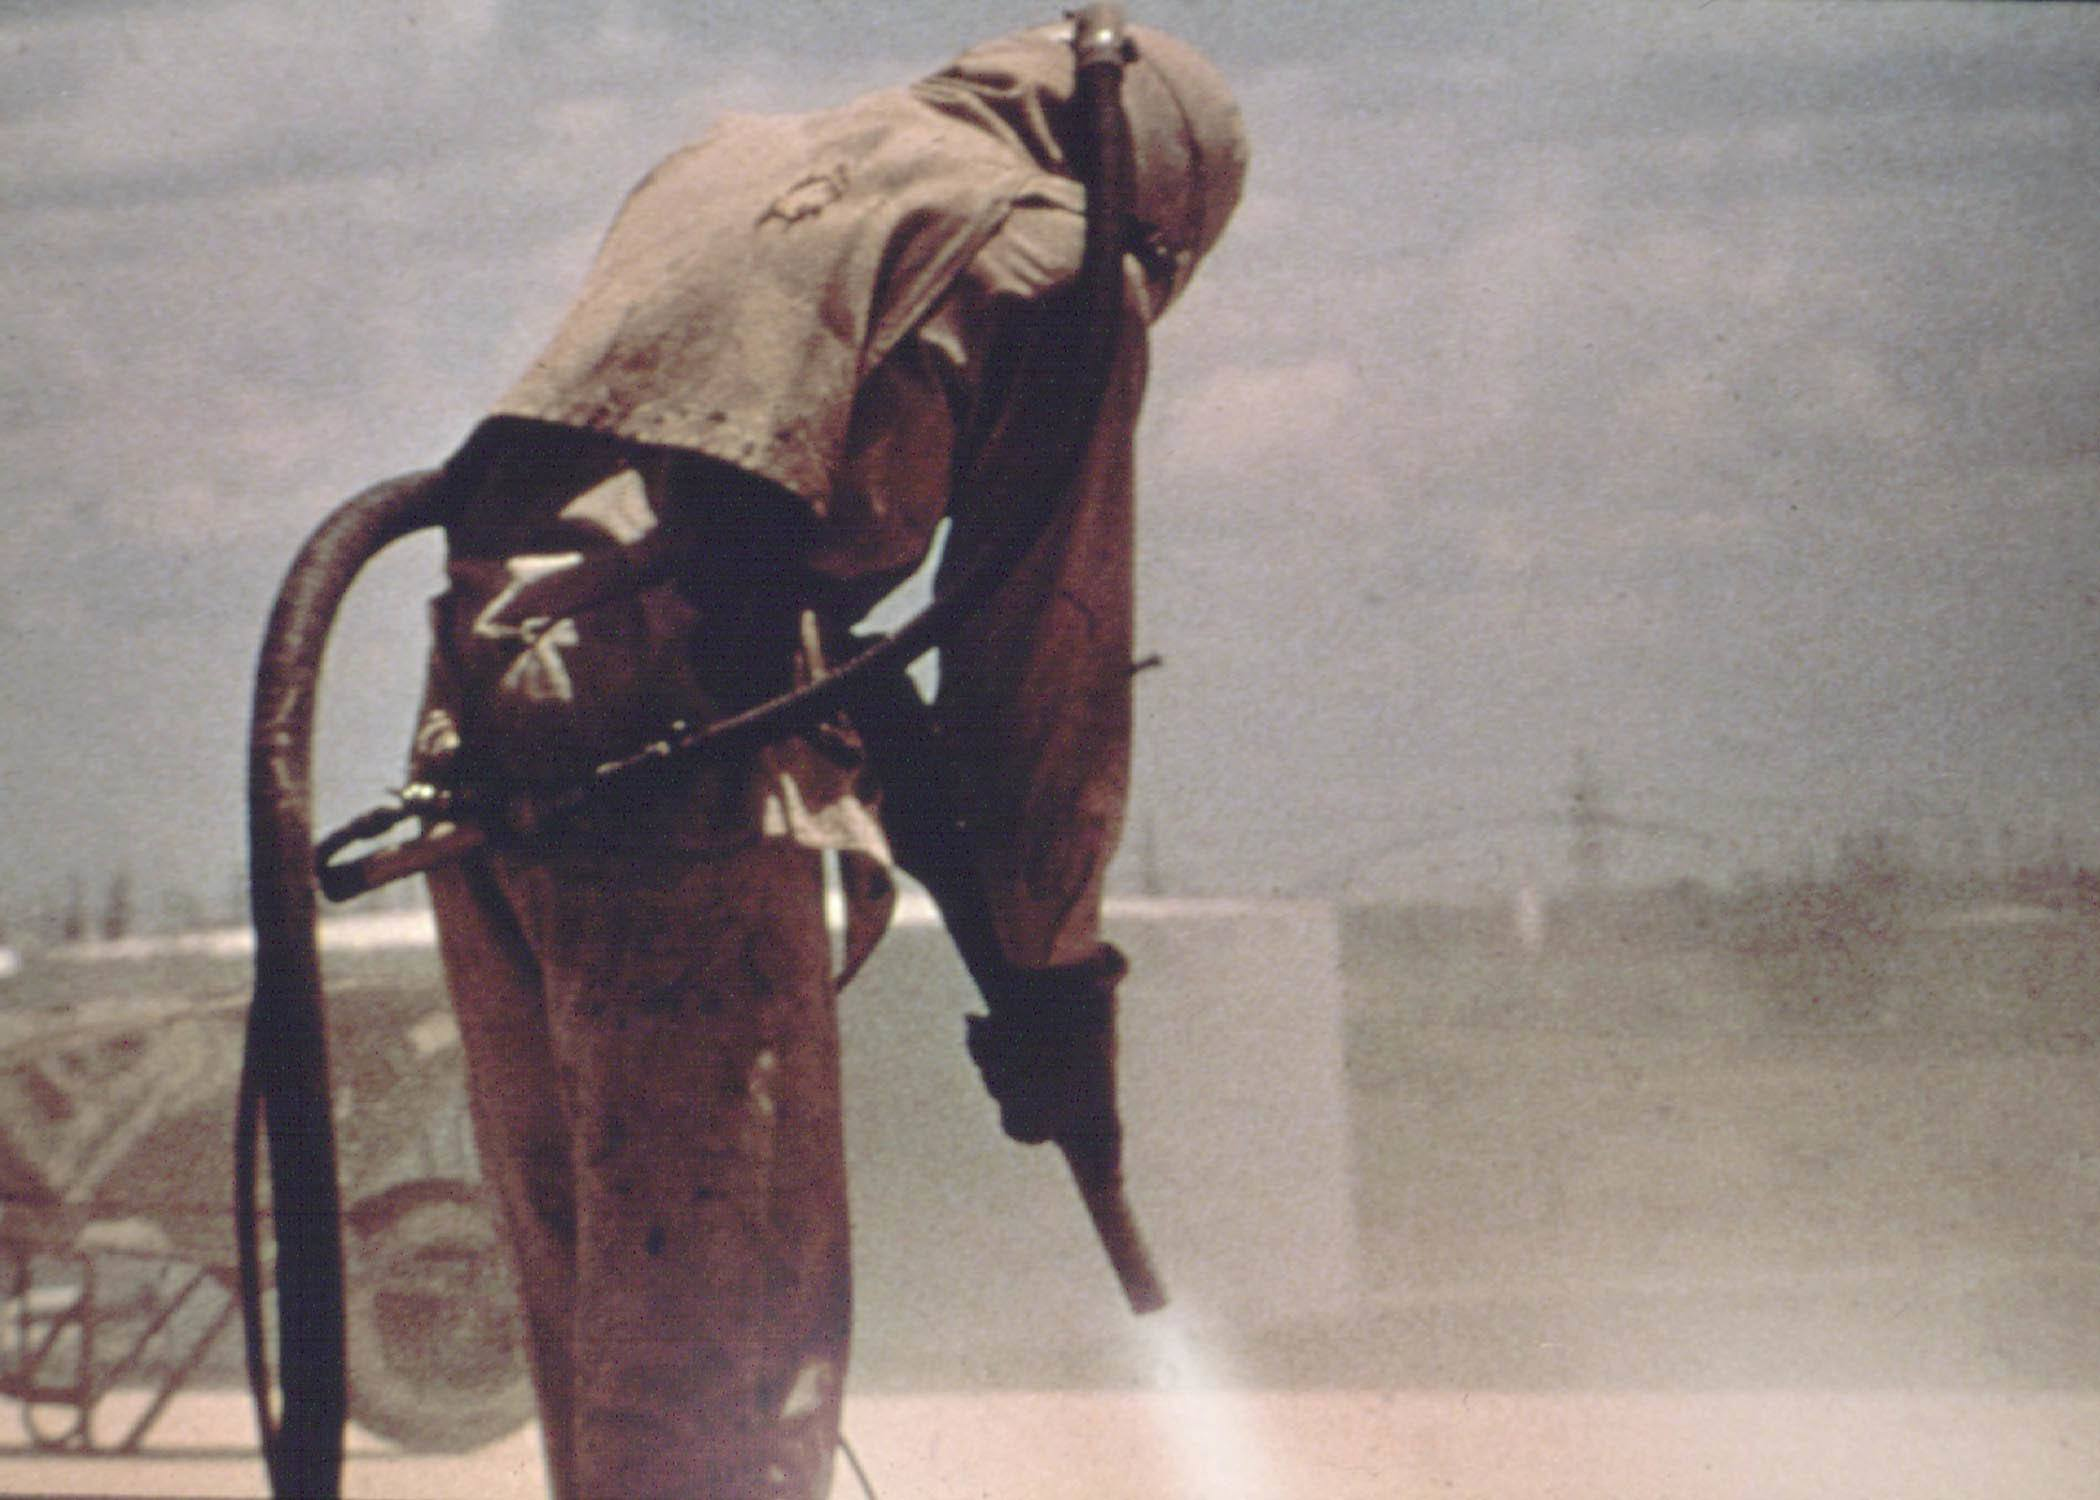 a sandblasting contractor working wearing full protective gear